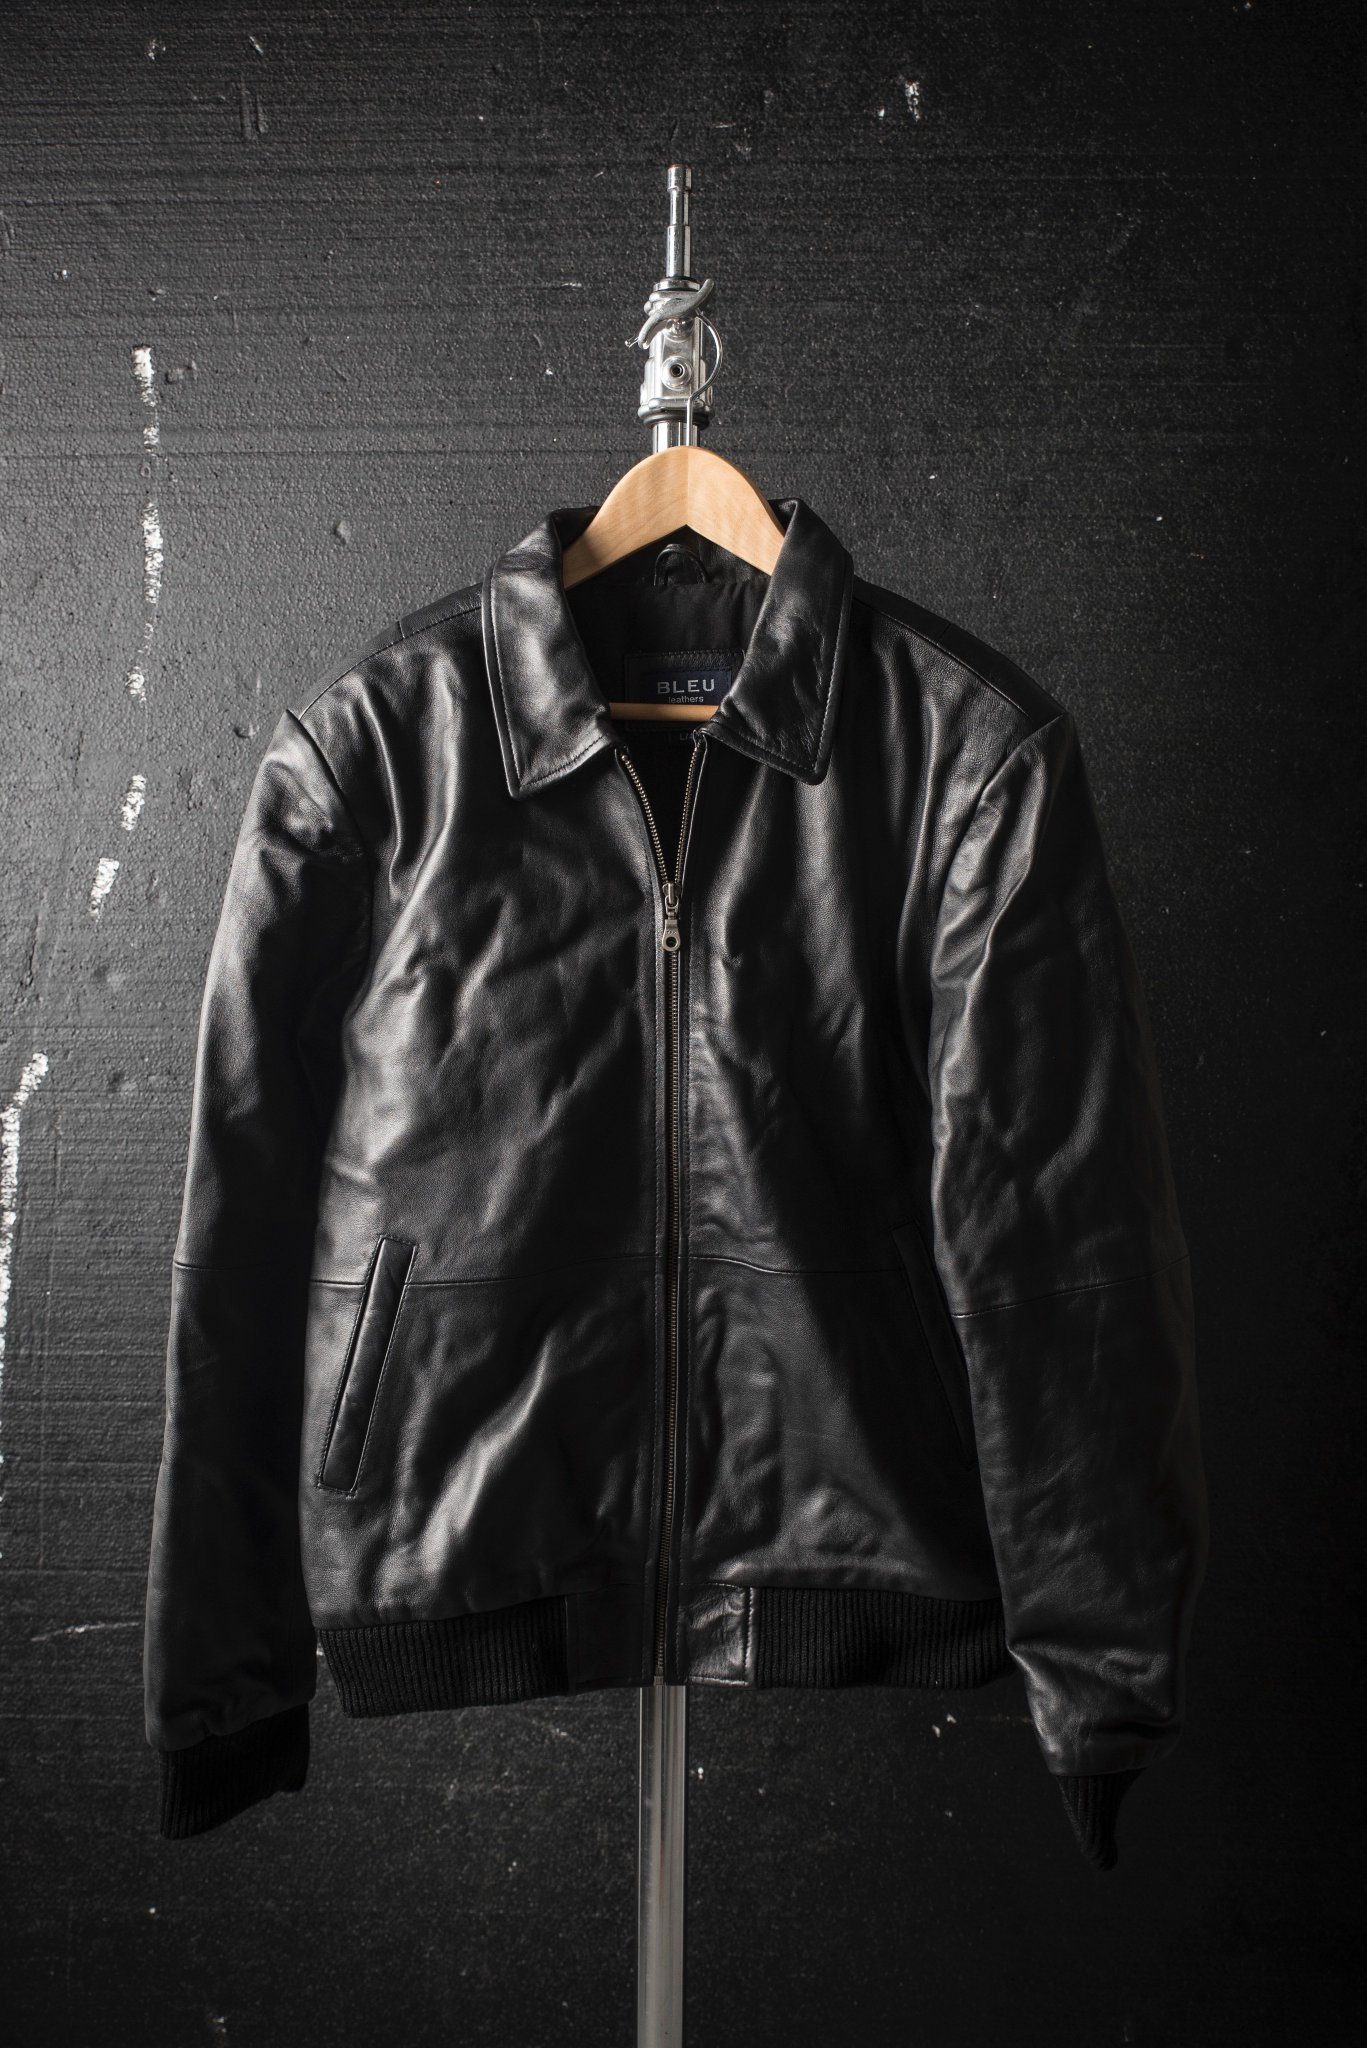 93c3b05fd Caine Leather on Twitter: